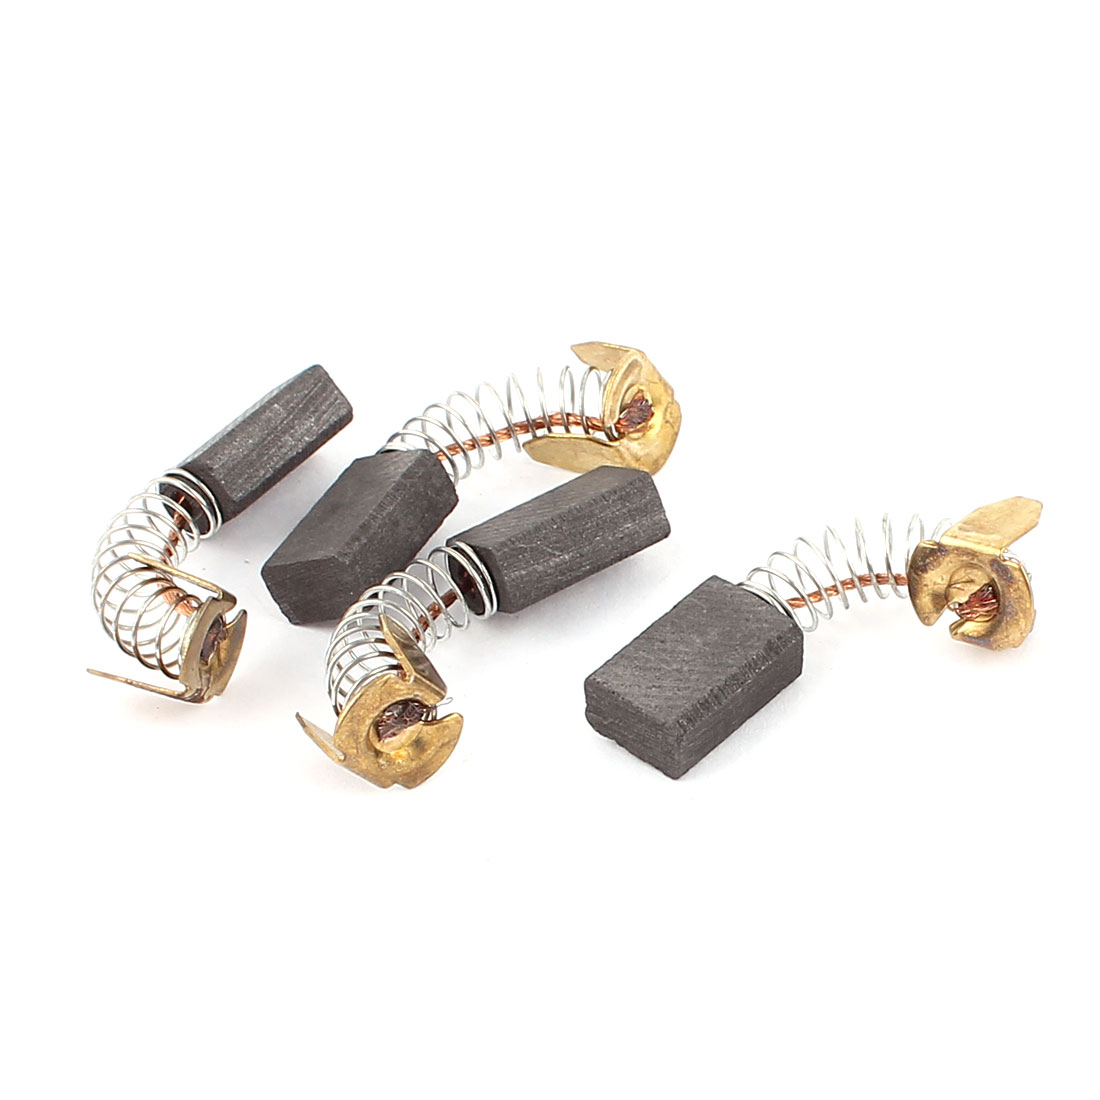 4 Pcs Electric Motor Carbon Brushes 12 x 8 x 5mm for Power Tool